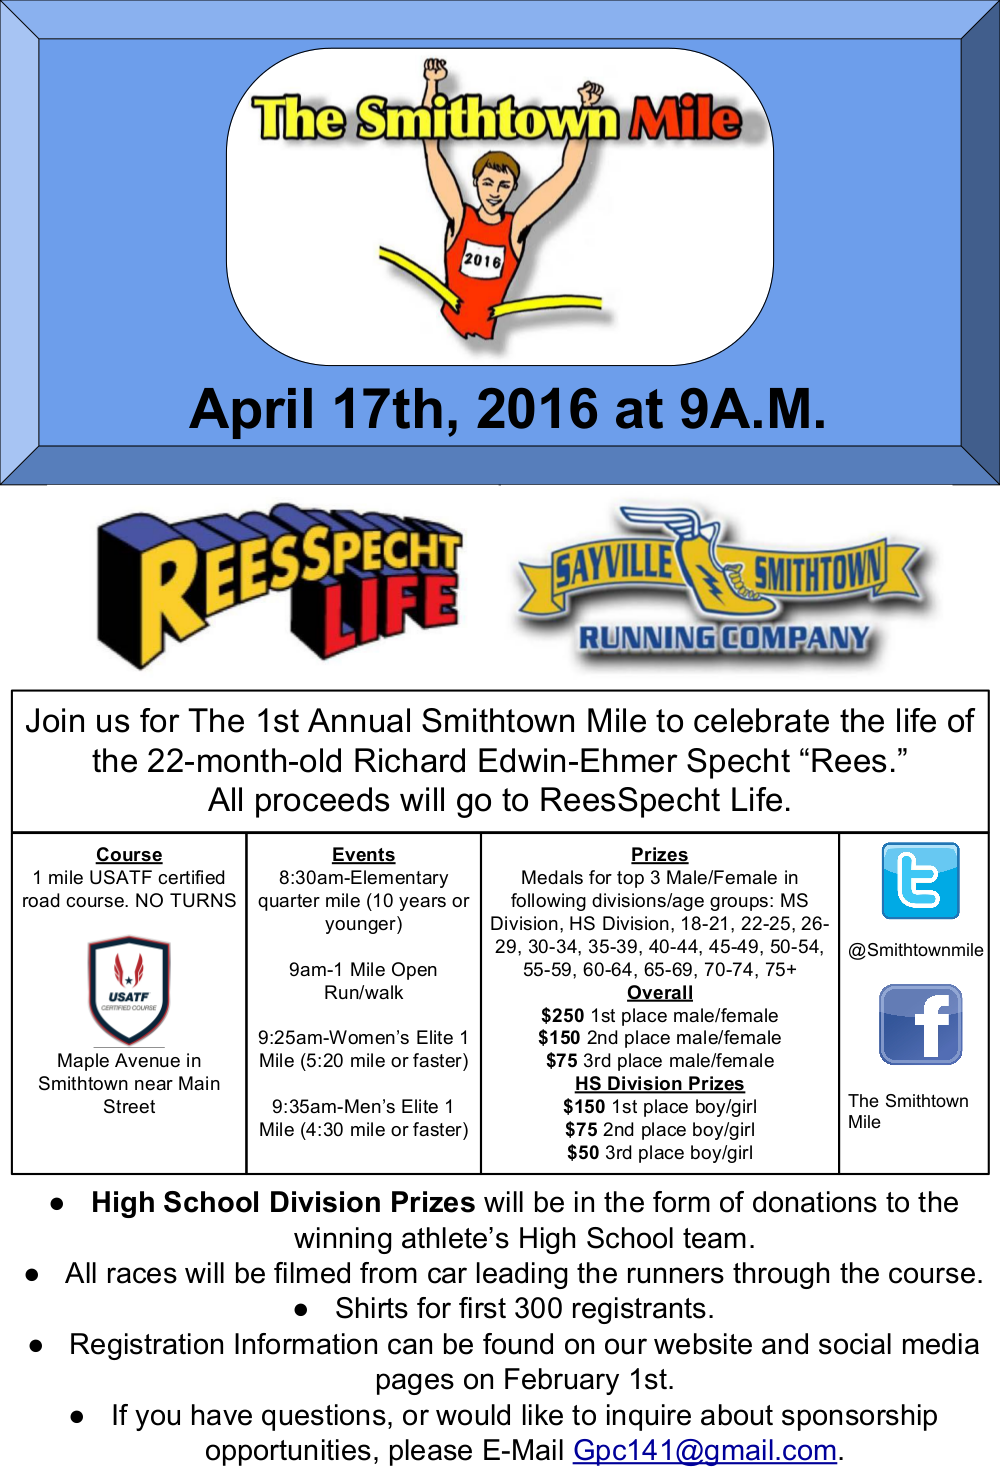 The Smithtown Mile